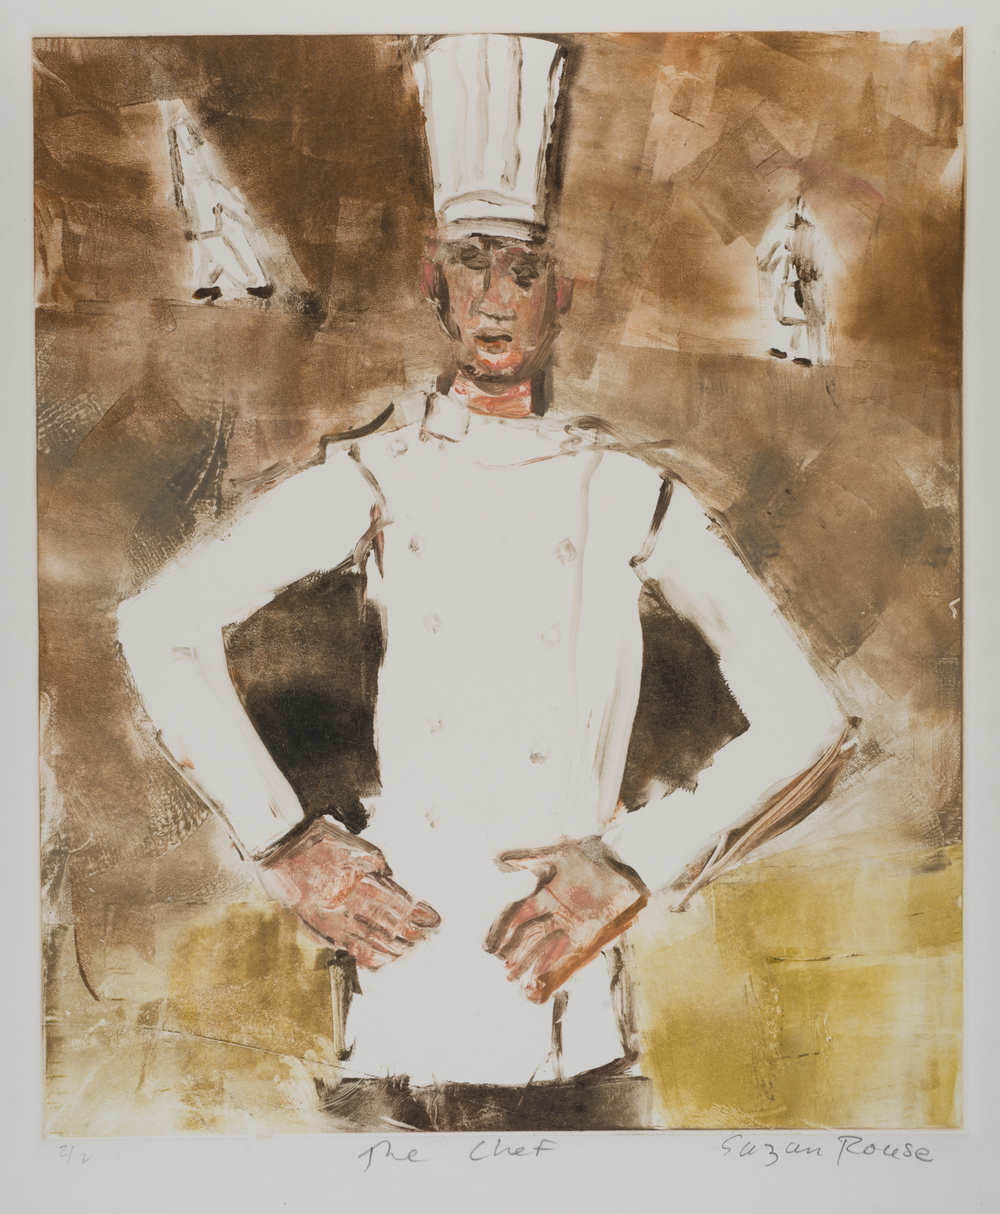 """""""The Chef"""", monoprint and oil, 26""""x20"""", 2015"""